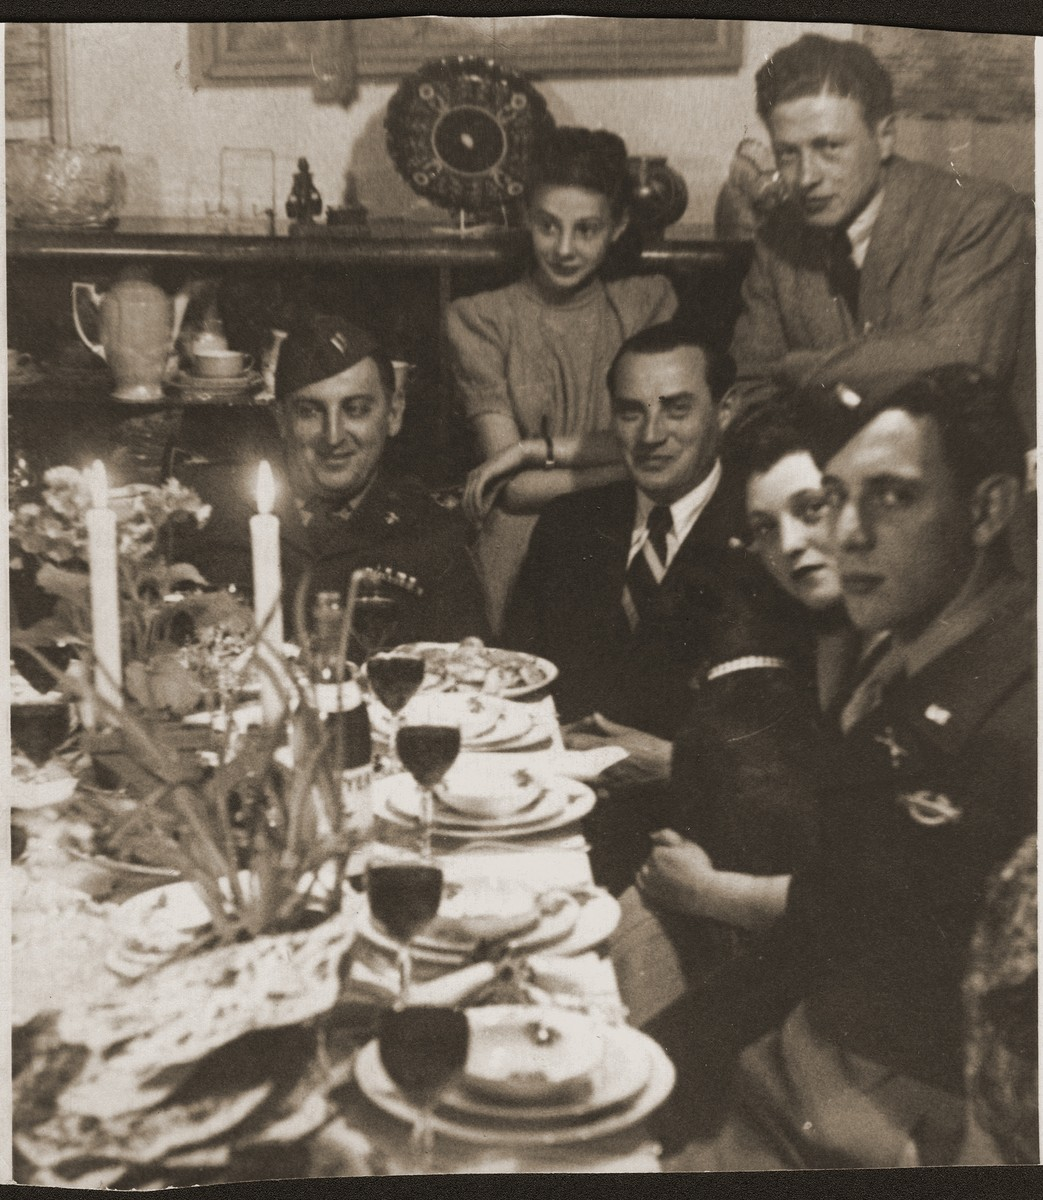 Welek Luksenburg attends a Passover seder in Bayreuth, 1946 at the home of Mary Ganzweich.  Those pictured include Captain Cooly (right), Halinka Merin (back center, daughter of Mary Ganzweich), Welek Luksenburg and Henia Groudaper Shenley.